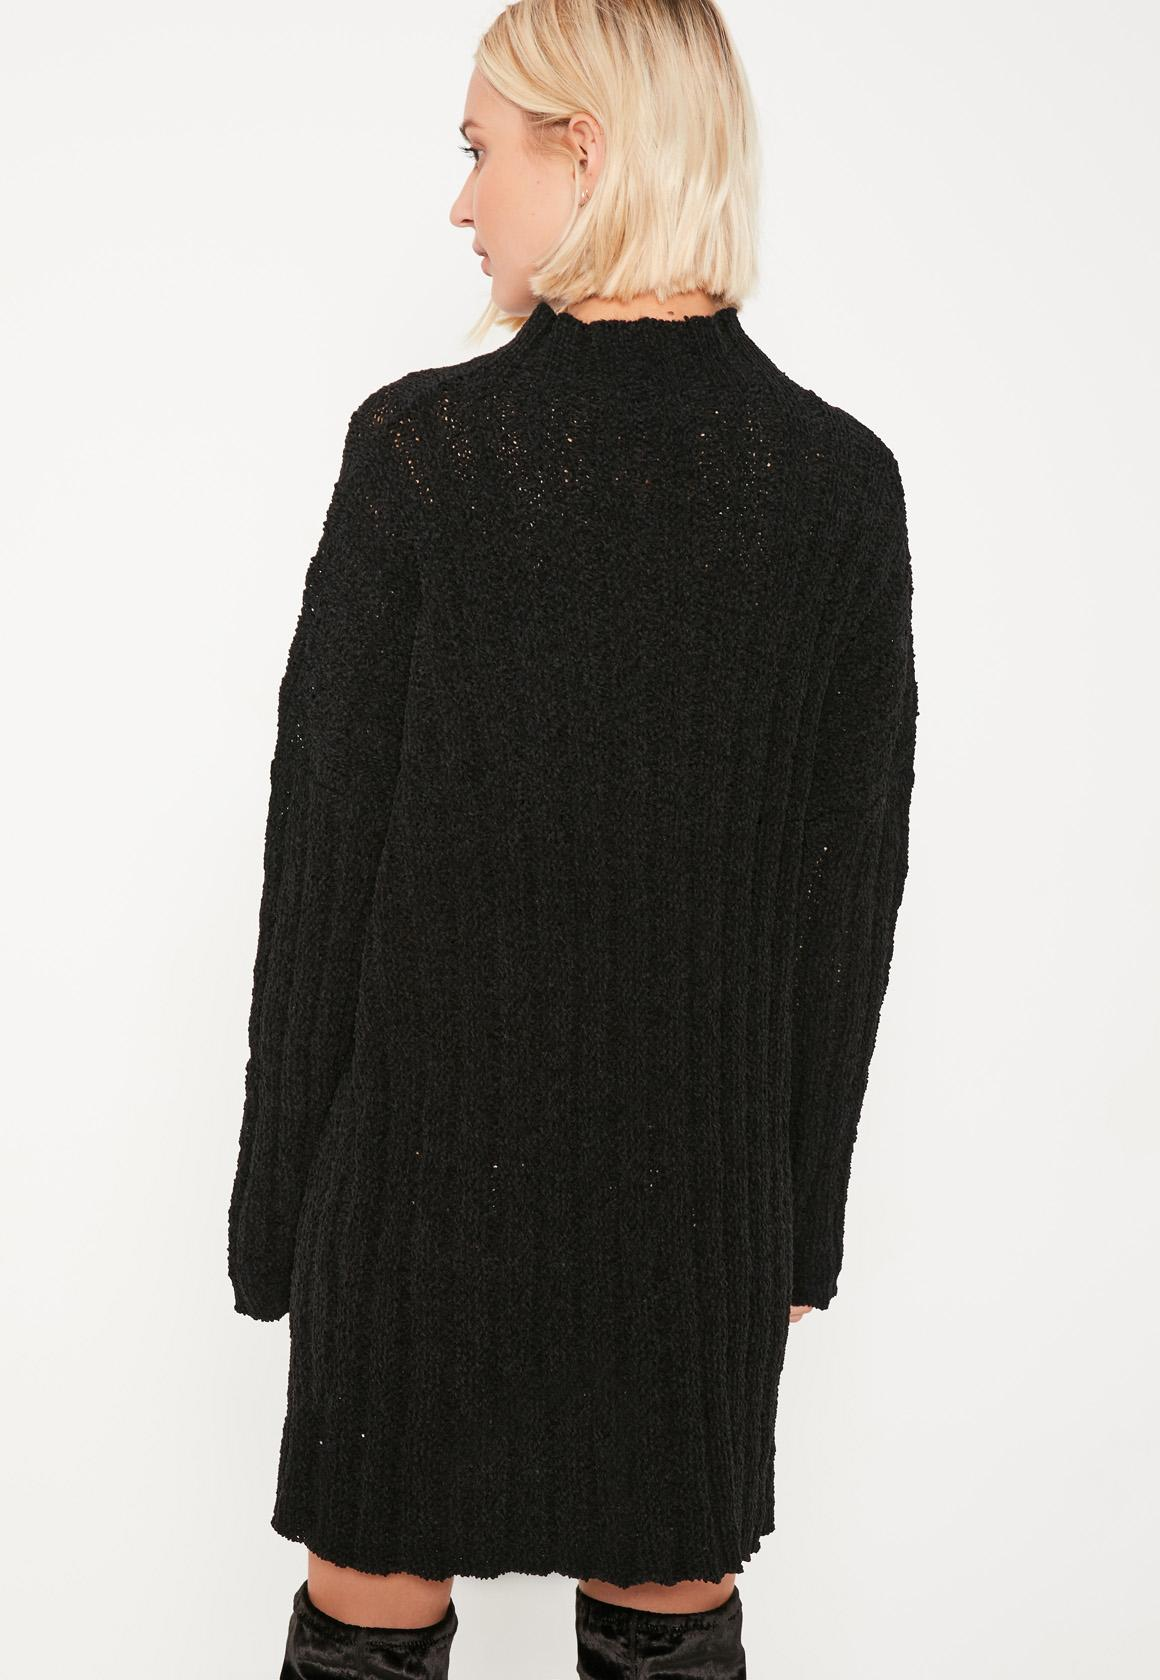 Knitting Pattern Slouch Jumper : Black Soft Knit Slouch Jumper Dress - Missguided